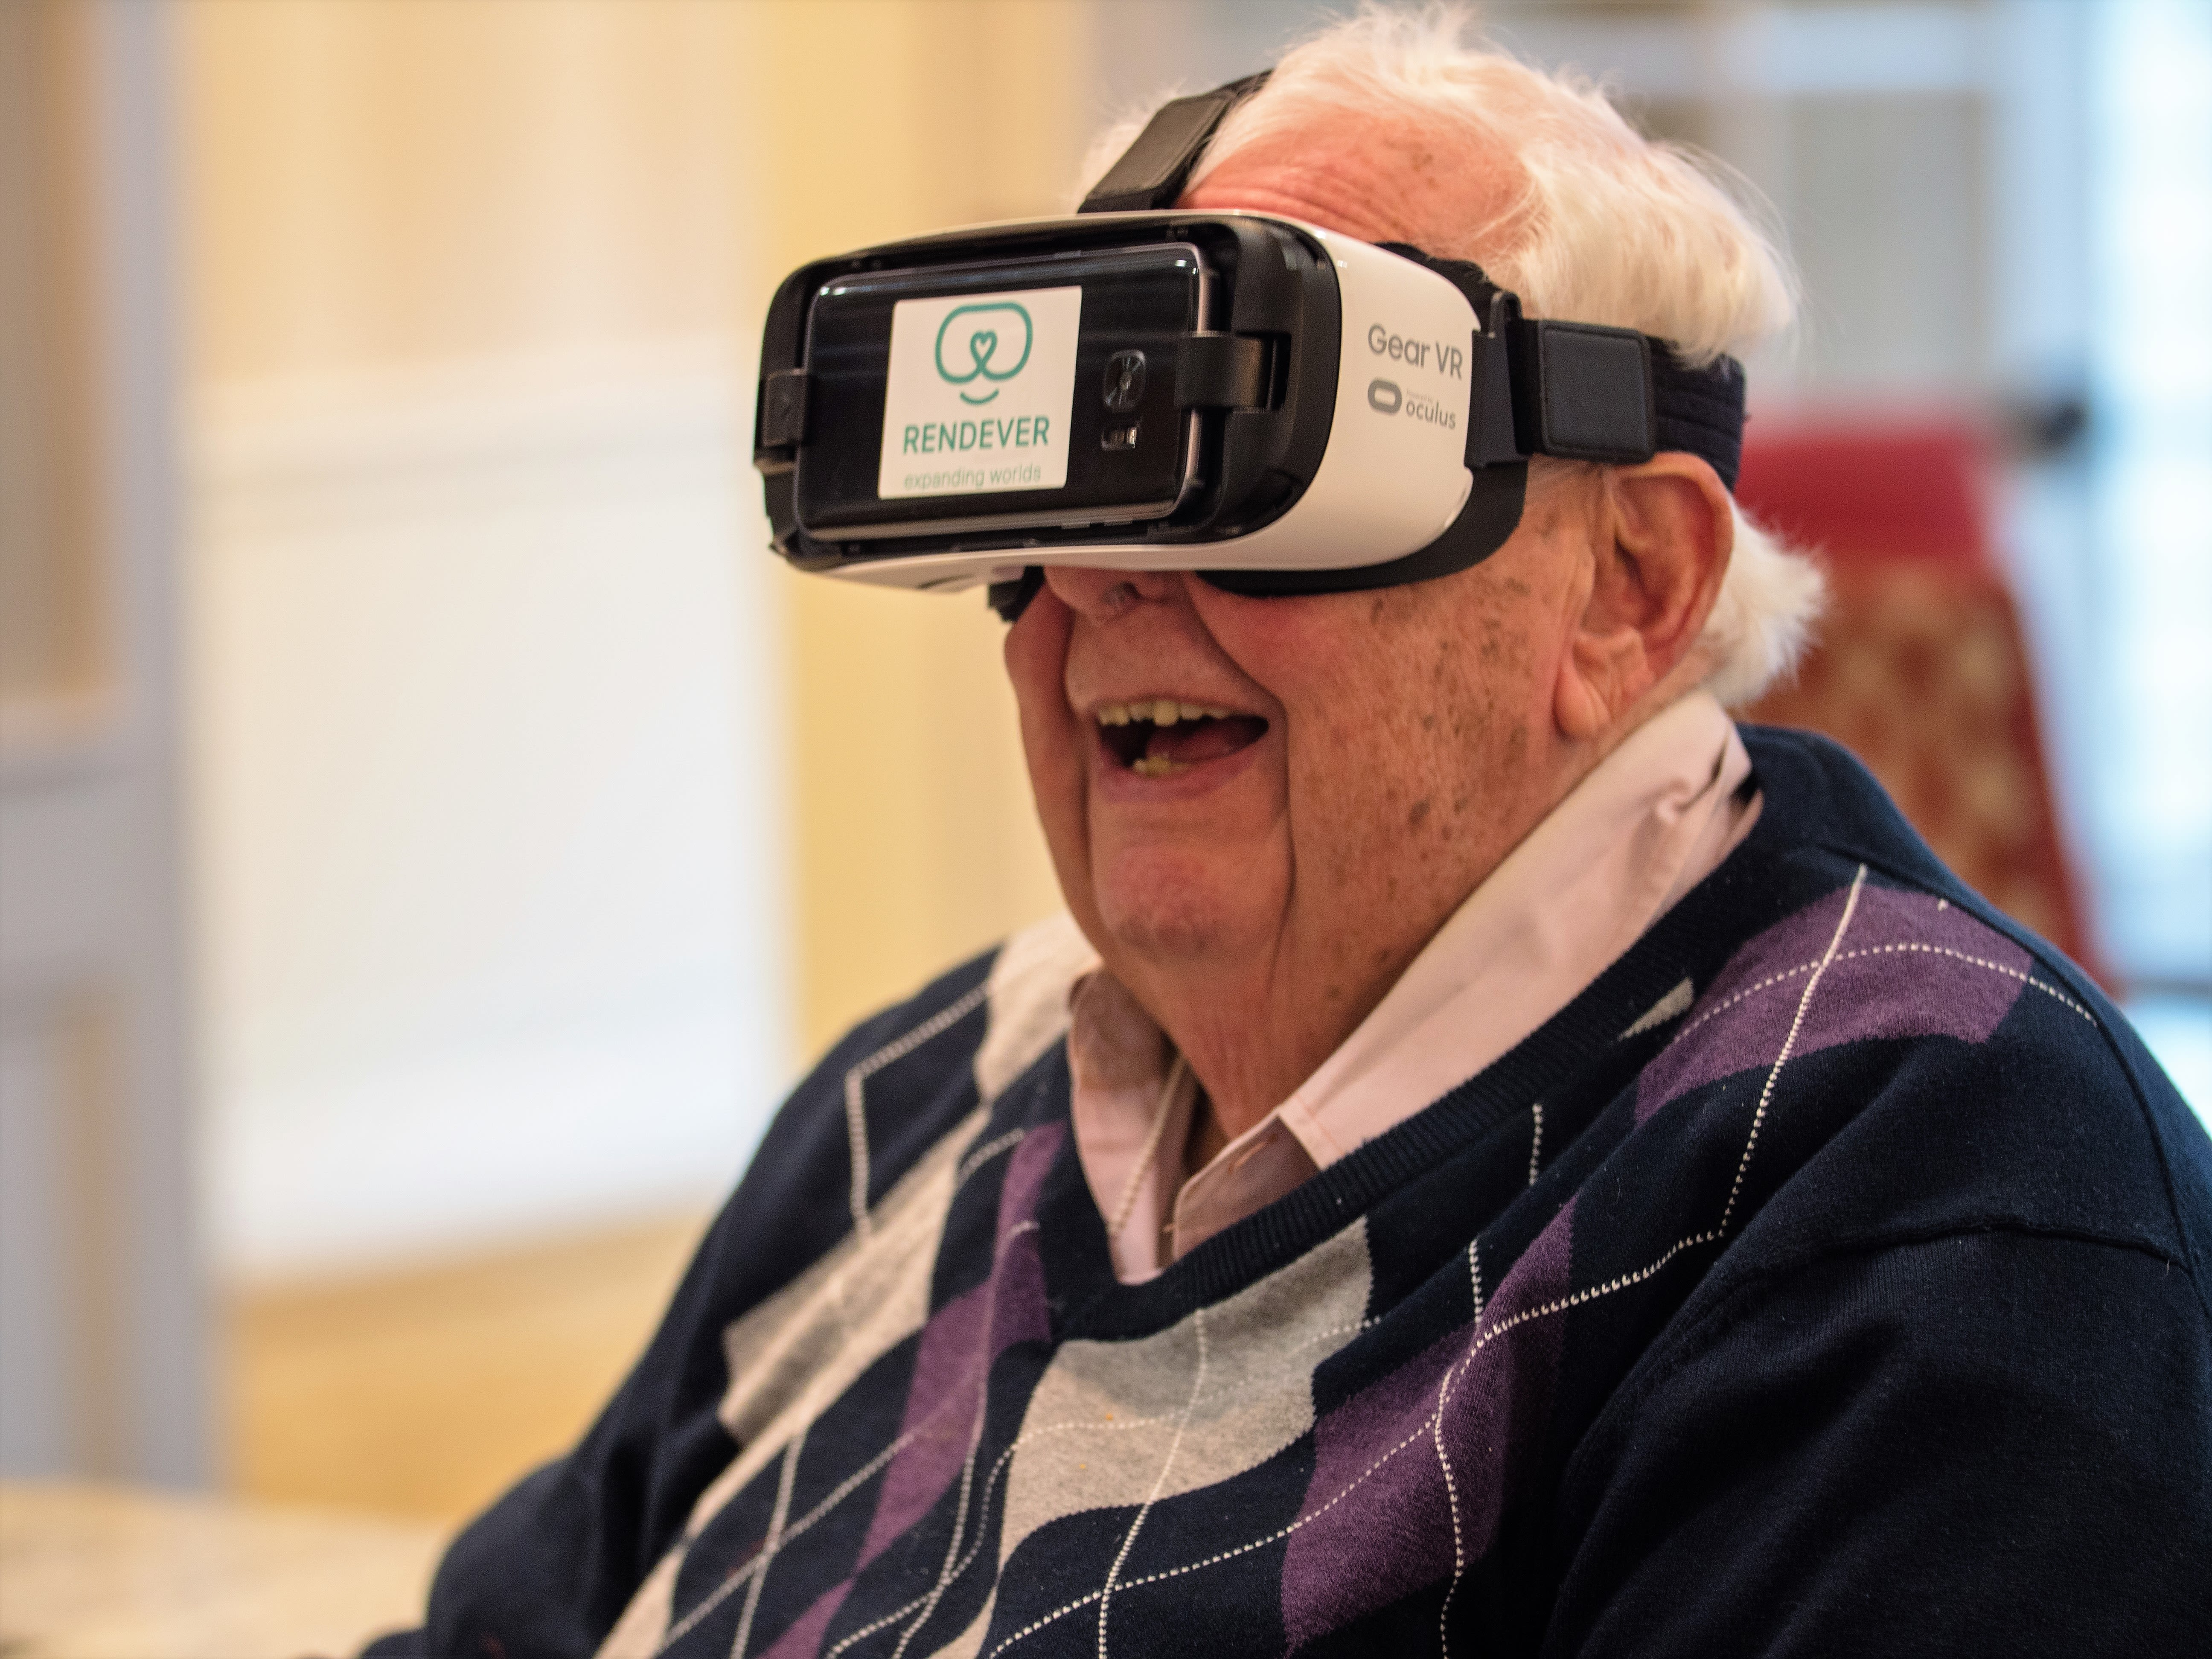 Senior using a VR headset at Maplewood at Southport in Southport, Connecticut